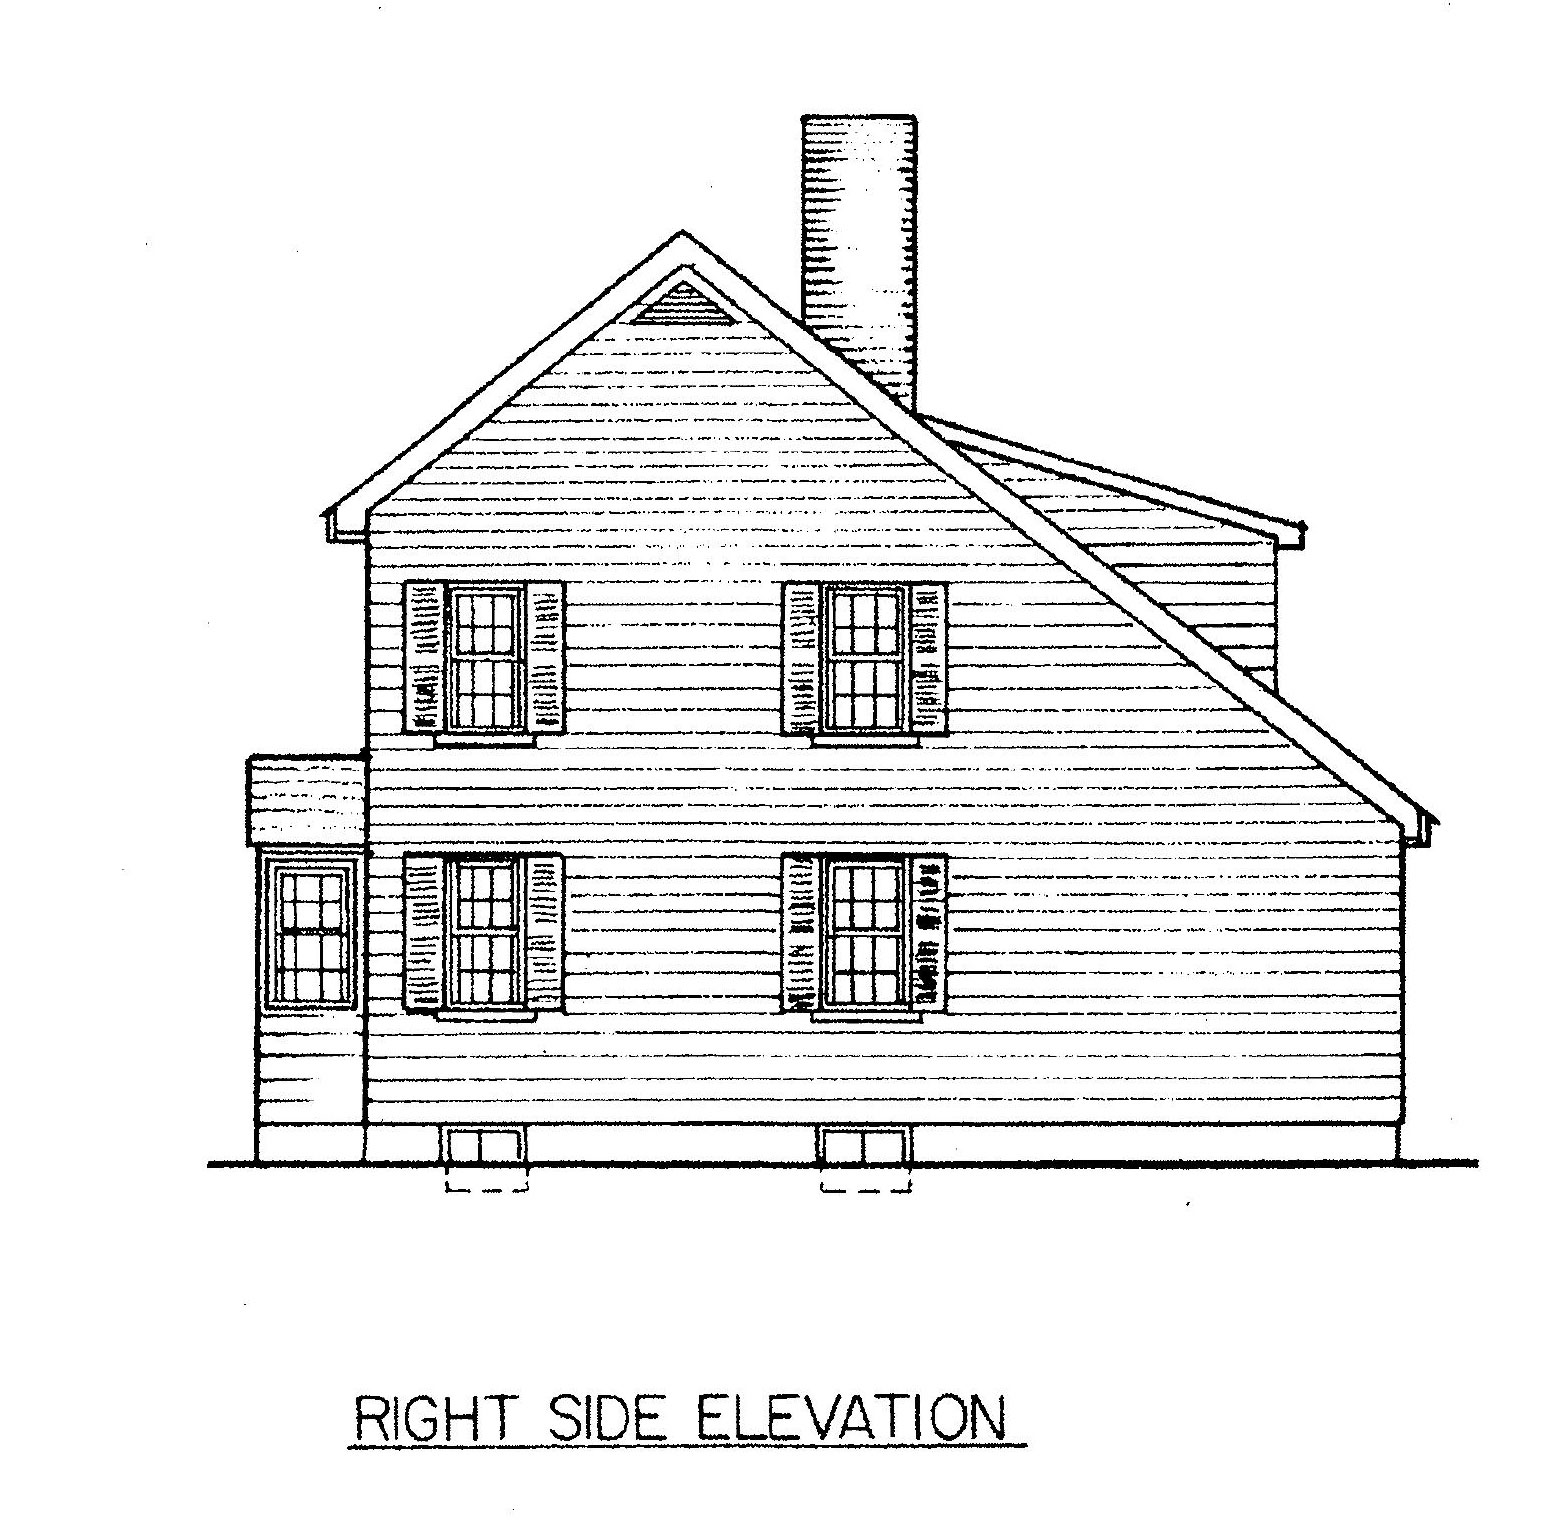 Saltbox house plans designs saltbox house interiors for Saltbox house plans designs